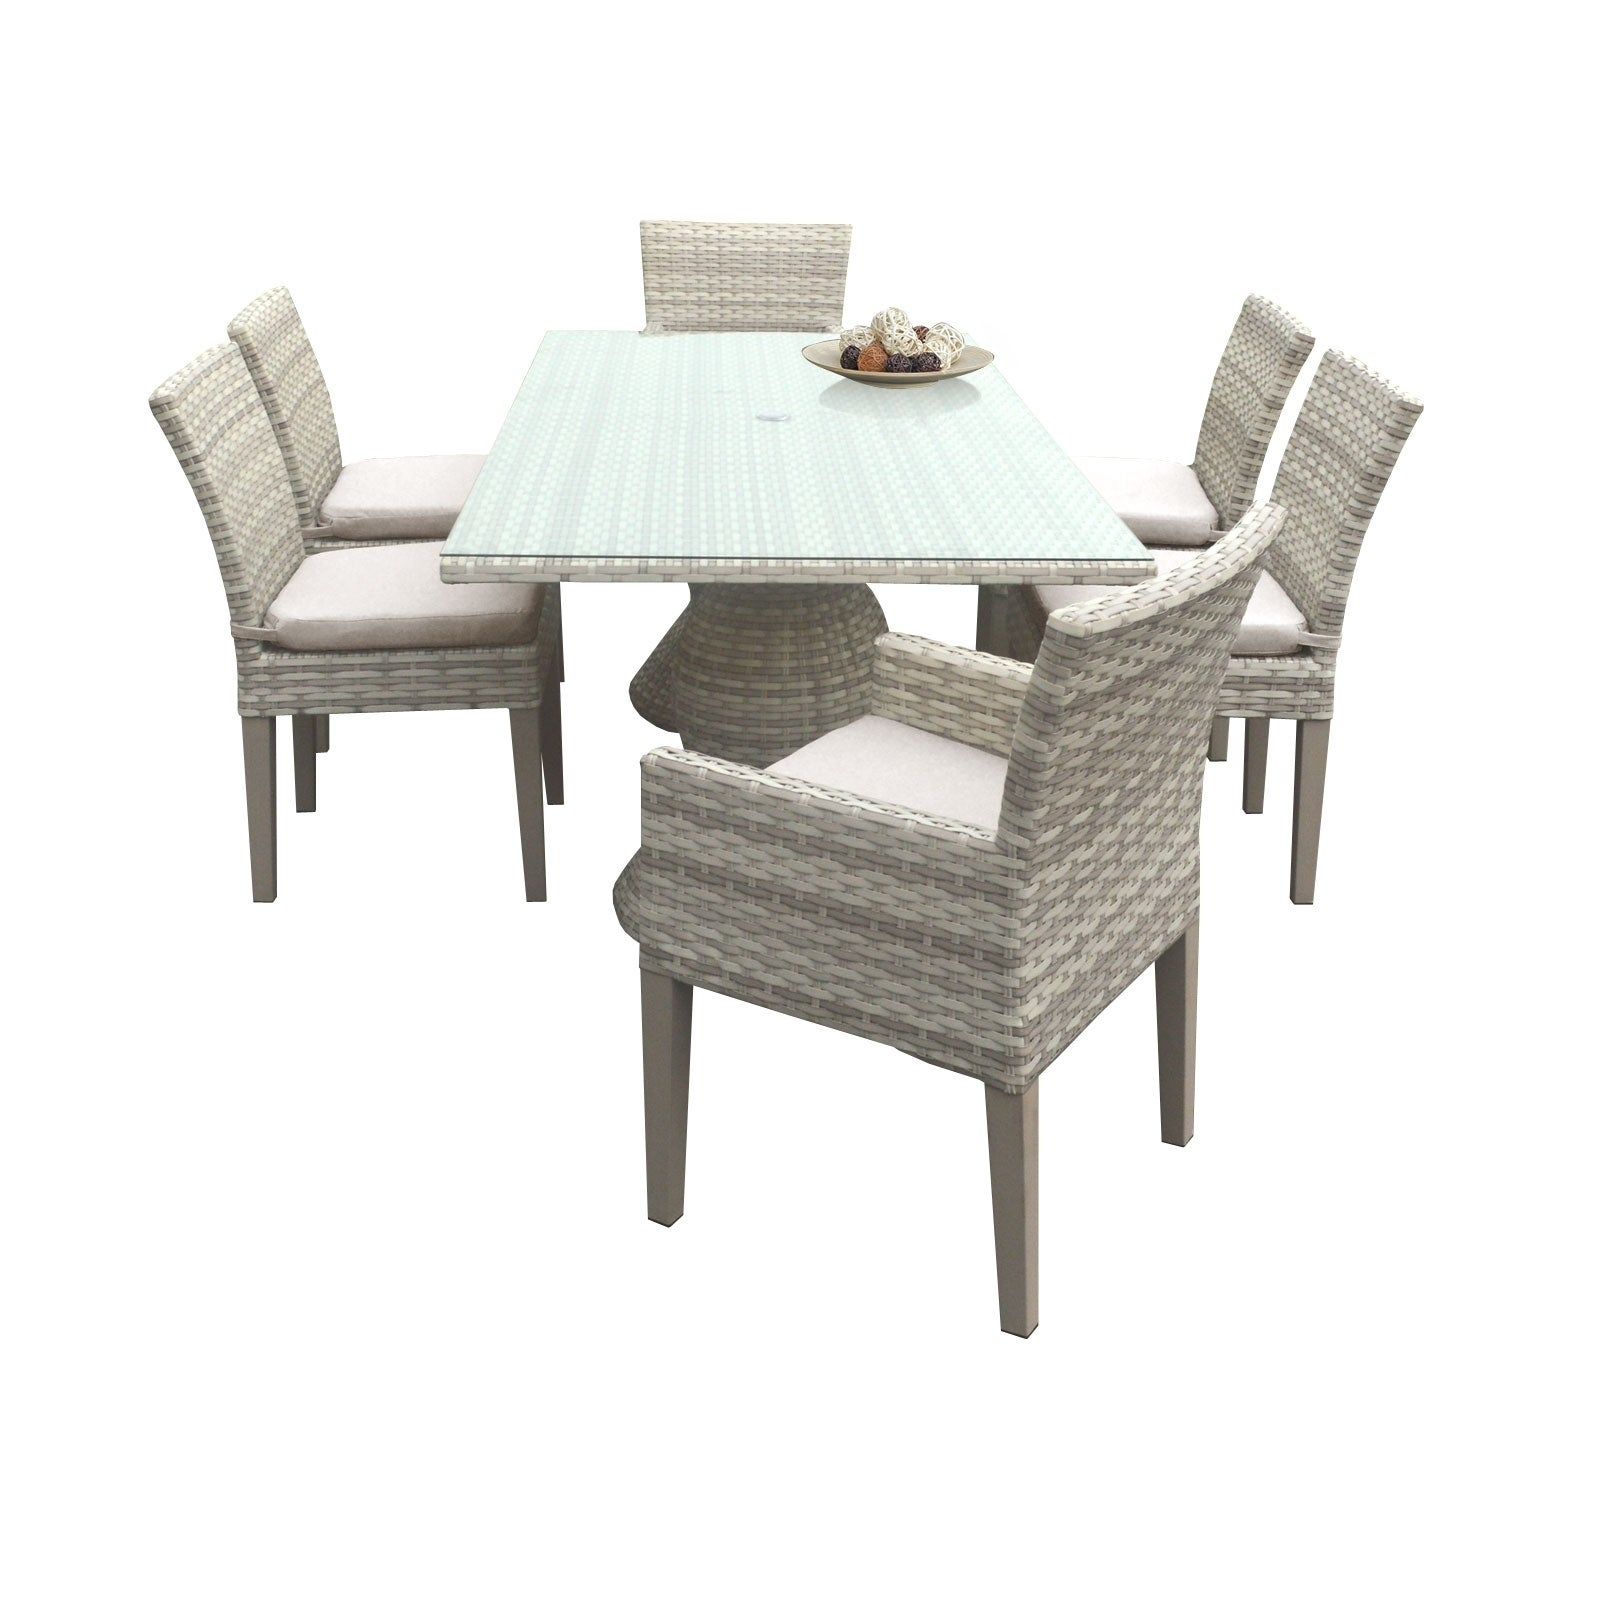 Catamaran Outdoor Patio Rectangular Wicker Dining Table With 4 Side Chairs And 2 Arm